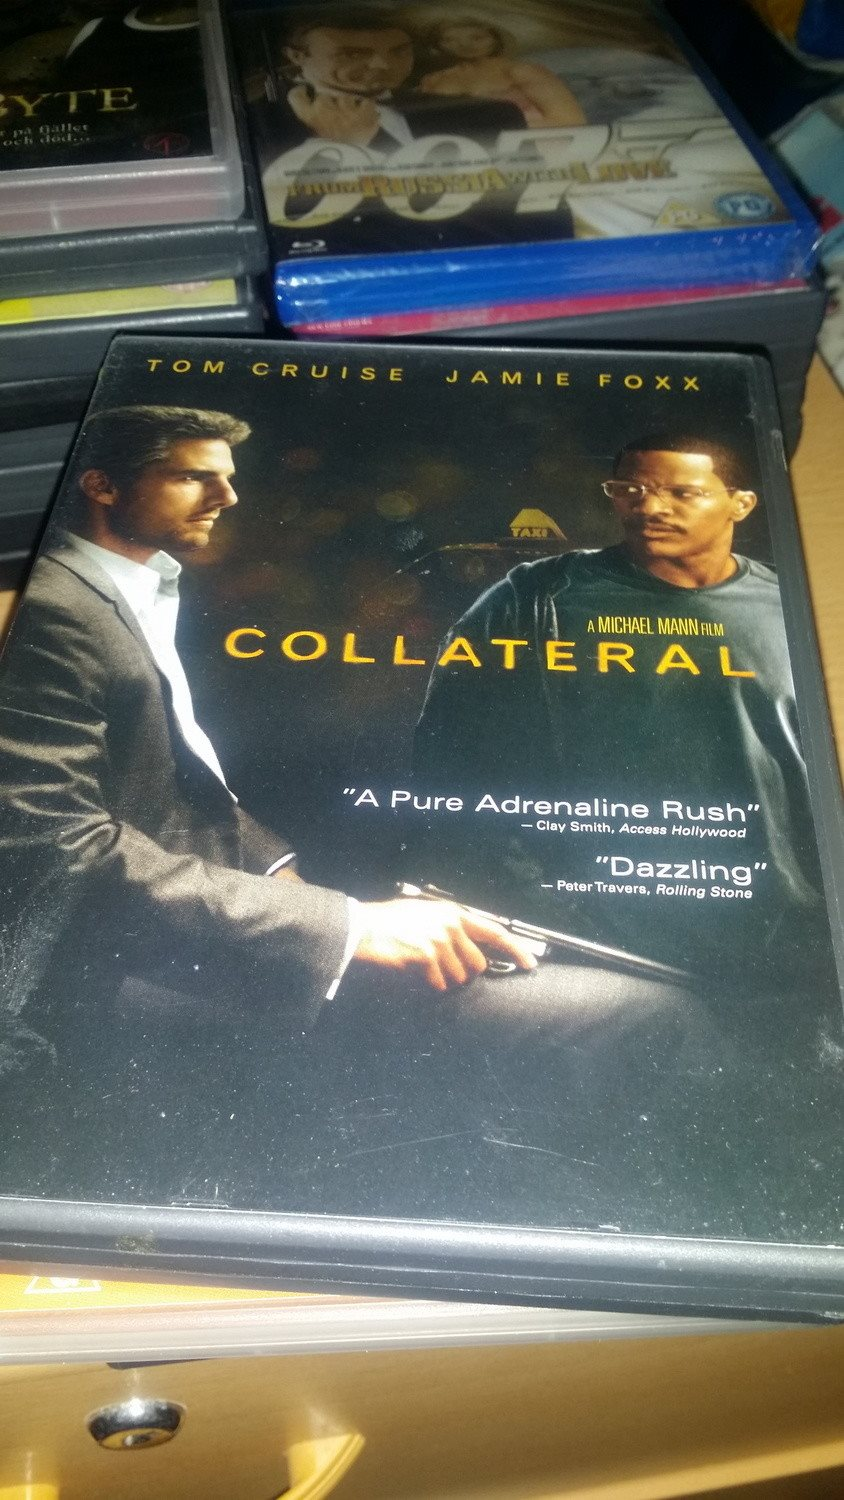 Collateral - Tom Cruise - 2 discutgåva